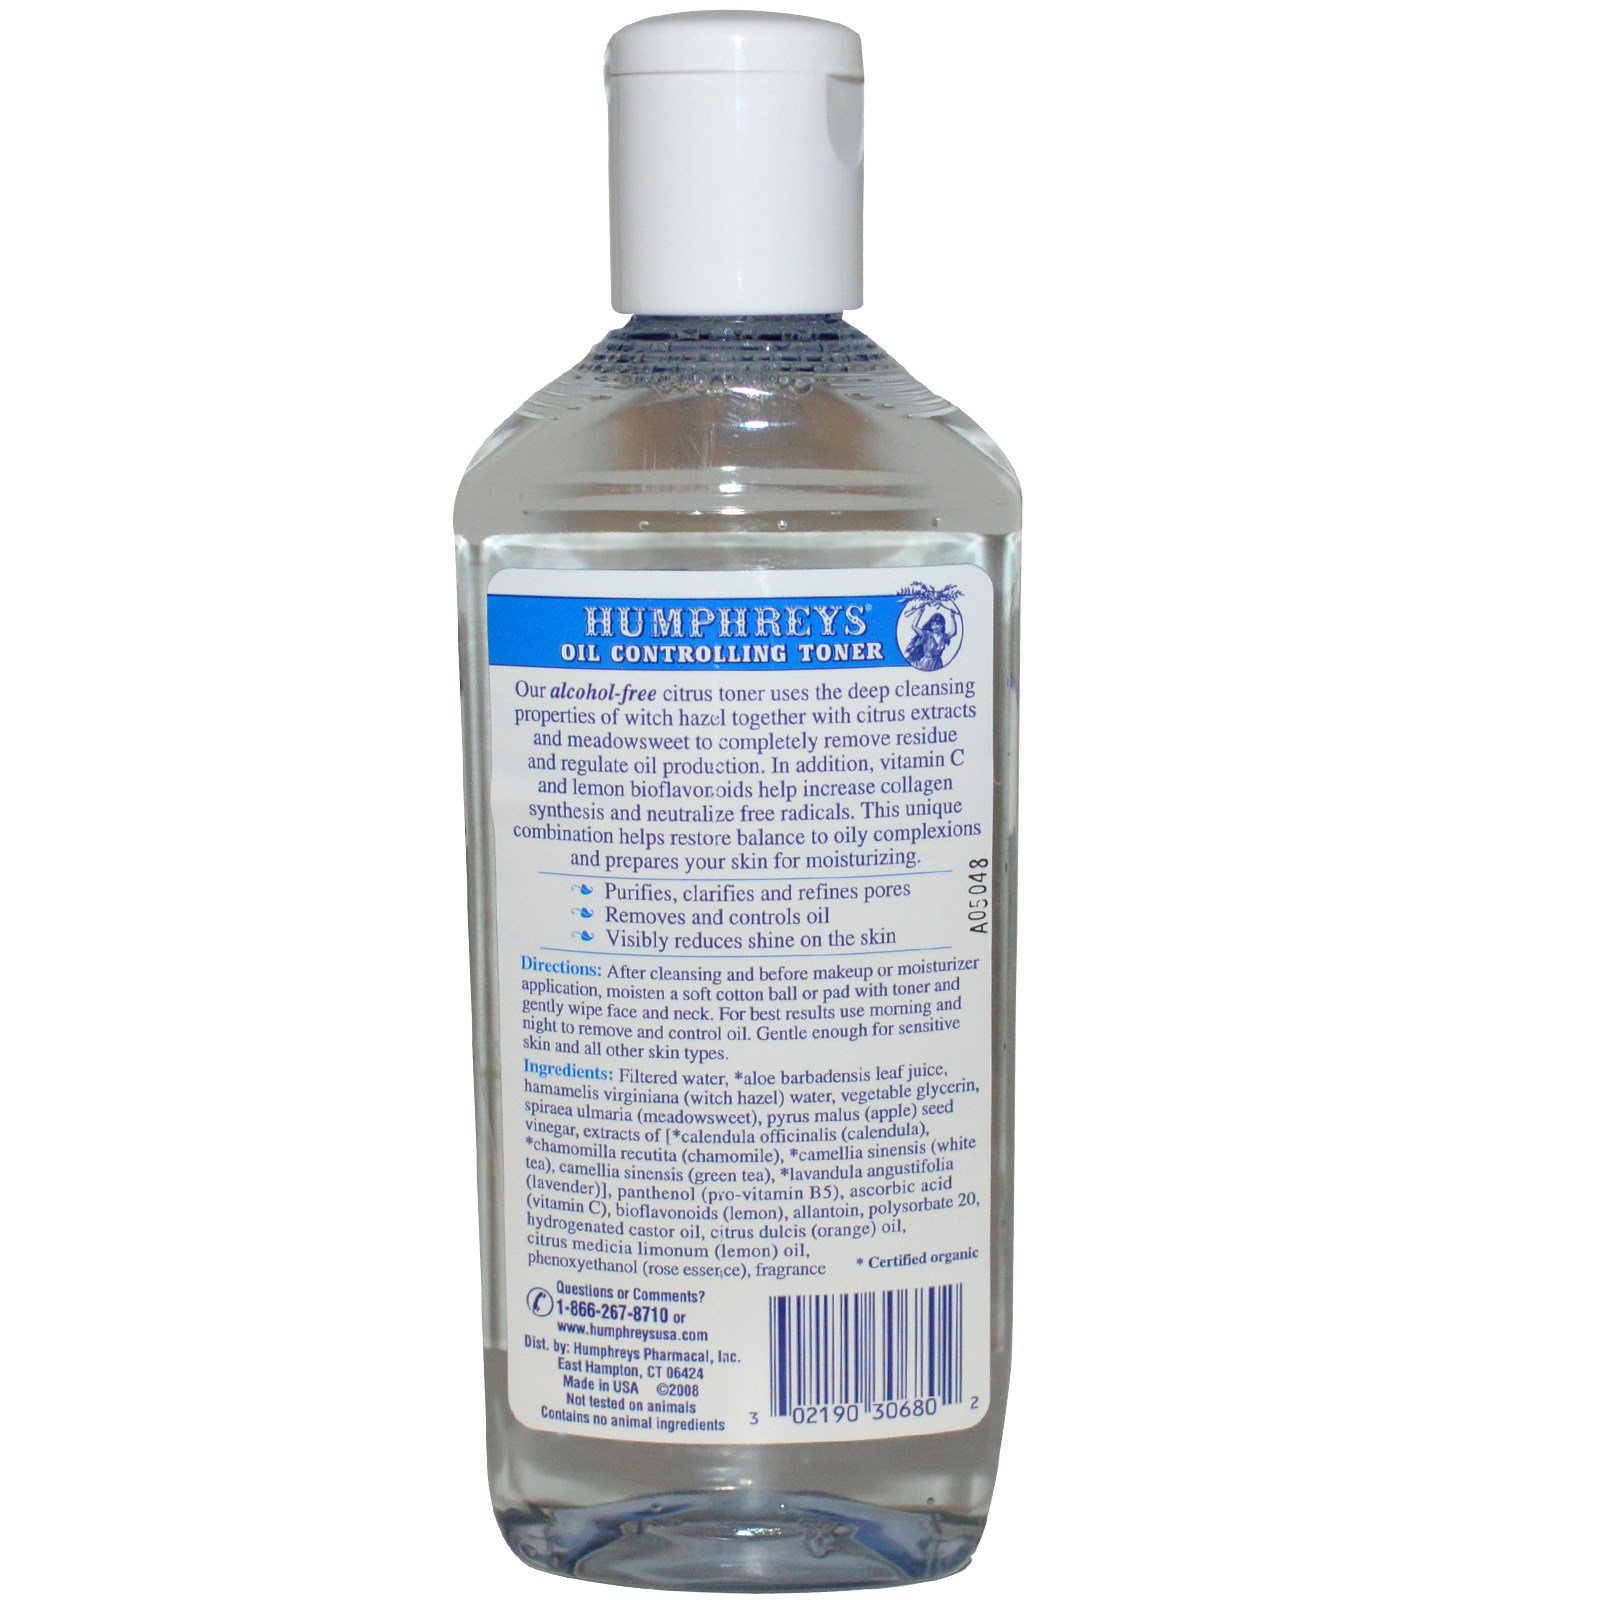 Humphreys Homeopathic Remedy Witch Hazel Facial Toner Citrus - 8 Fl Oz Missha Misa Gumsul Jin Cream 50ml